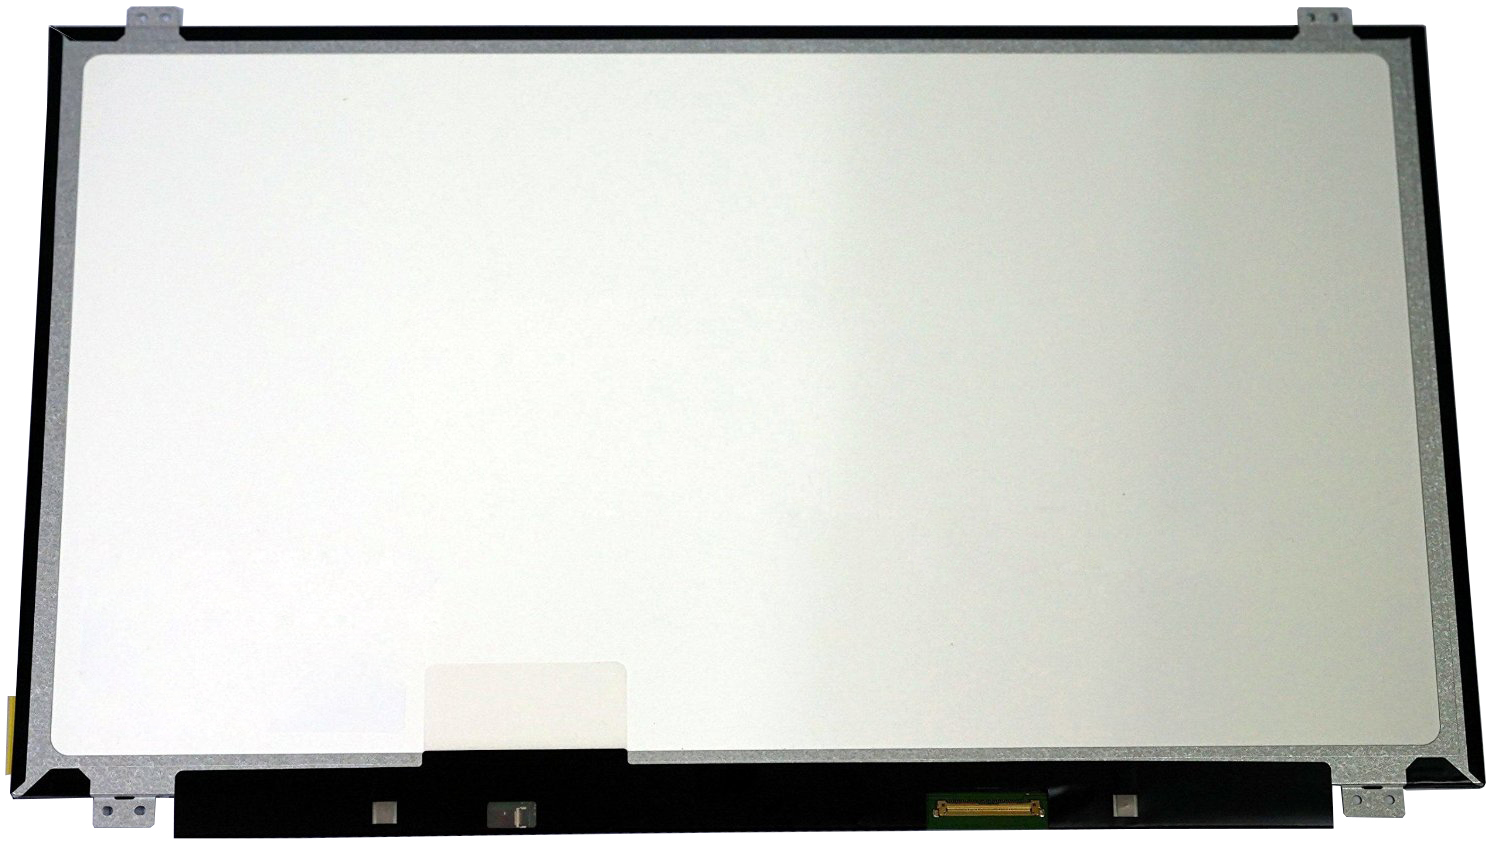 QuYing Laptop LCD Screen for Acer Aspire V5-573PG V5-561 V5-561G V3-572 V3-572G VN7-591G ES1-520 Series(15.6 1366x768 30pin) a065vl01 v3 lcd screen